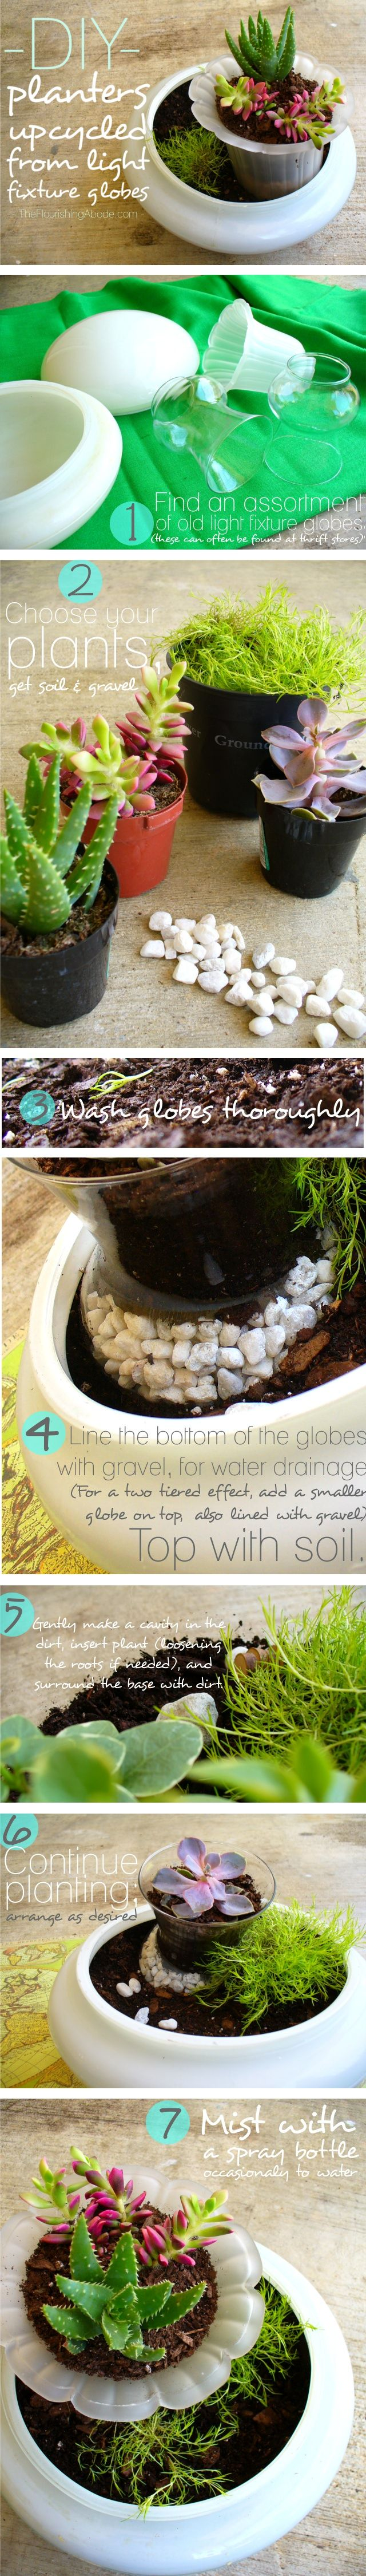 DIY Planters from Light Fixture Globes